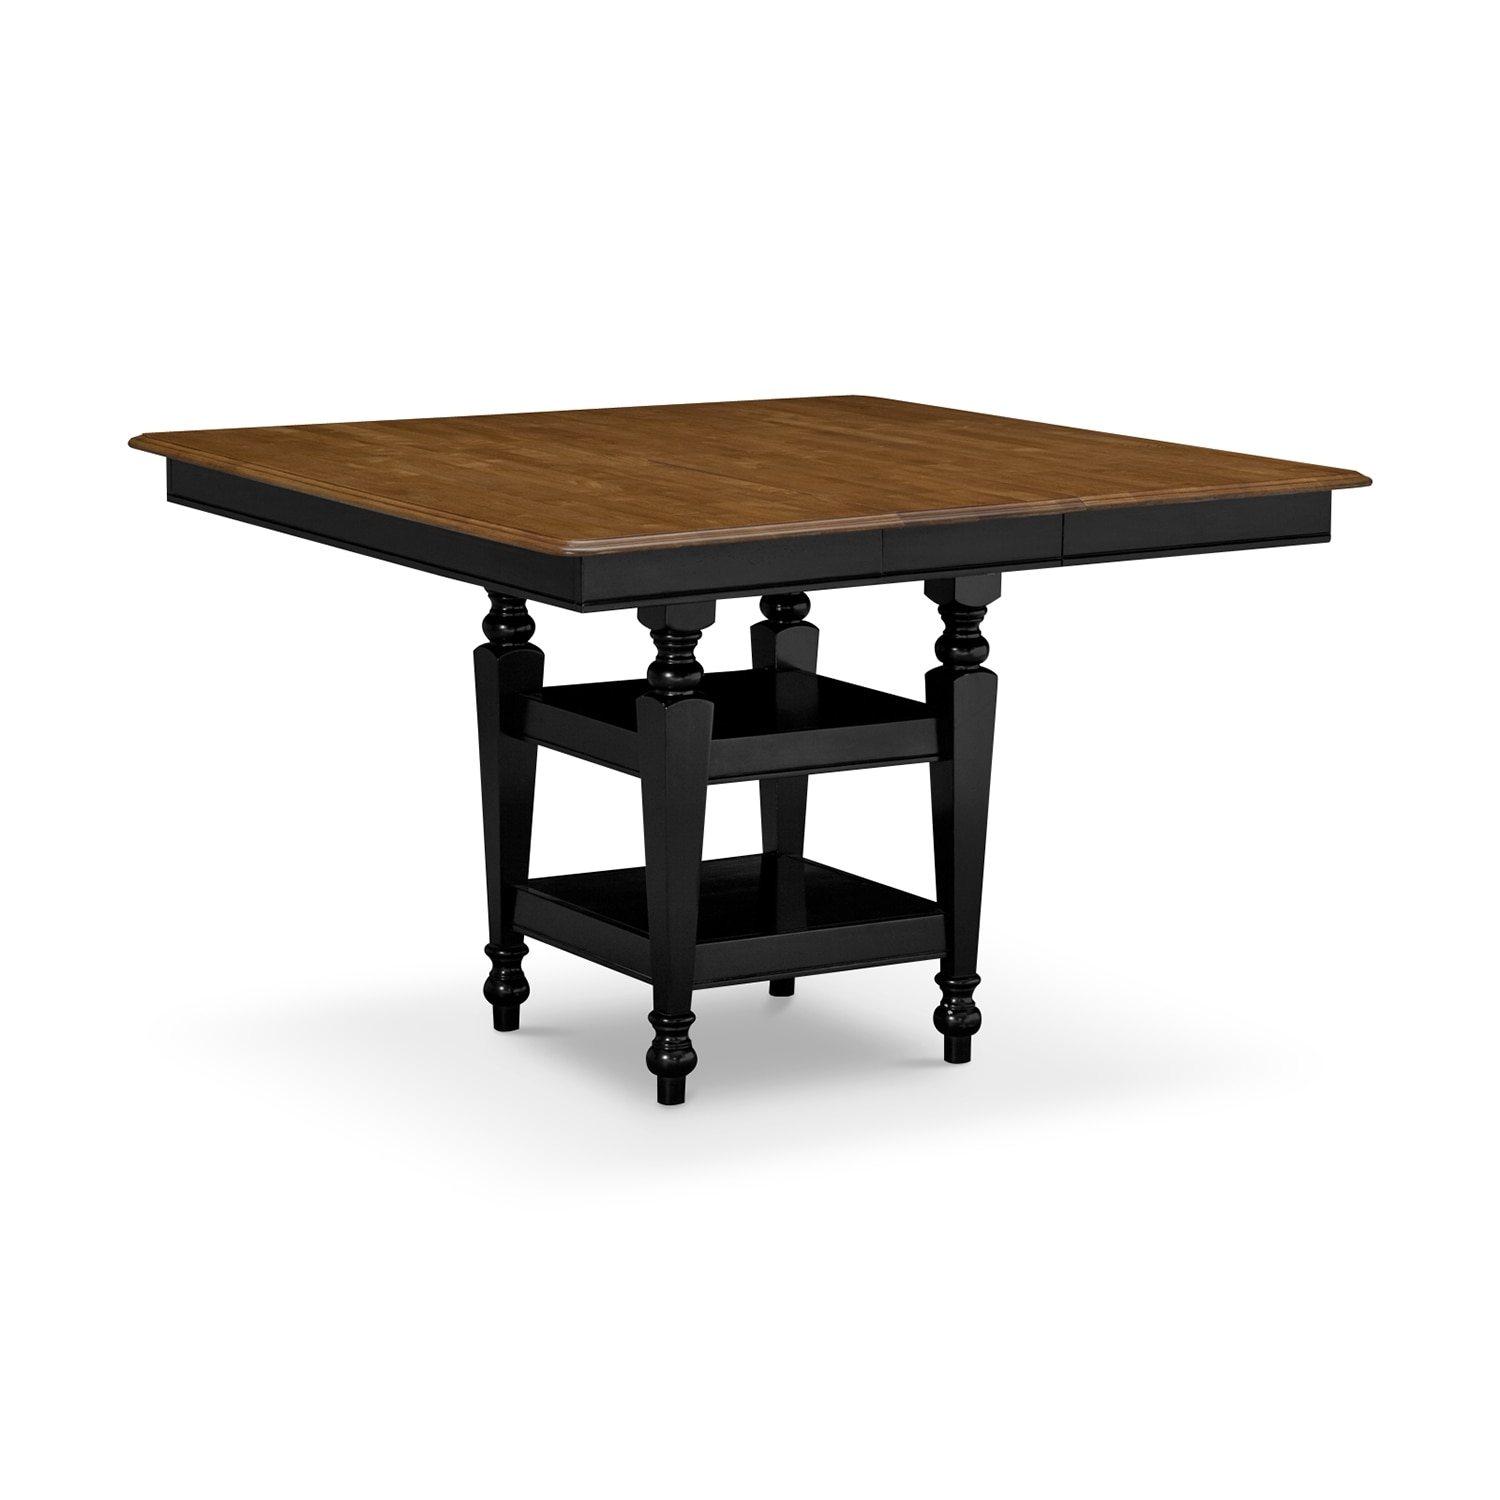 Dining Room Furniture - Chesapeake Counter-Height Table